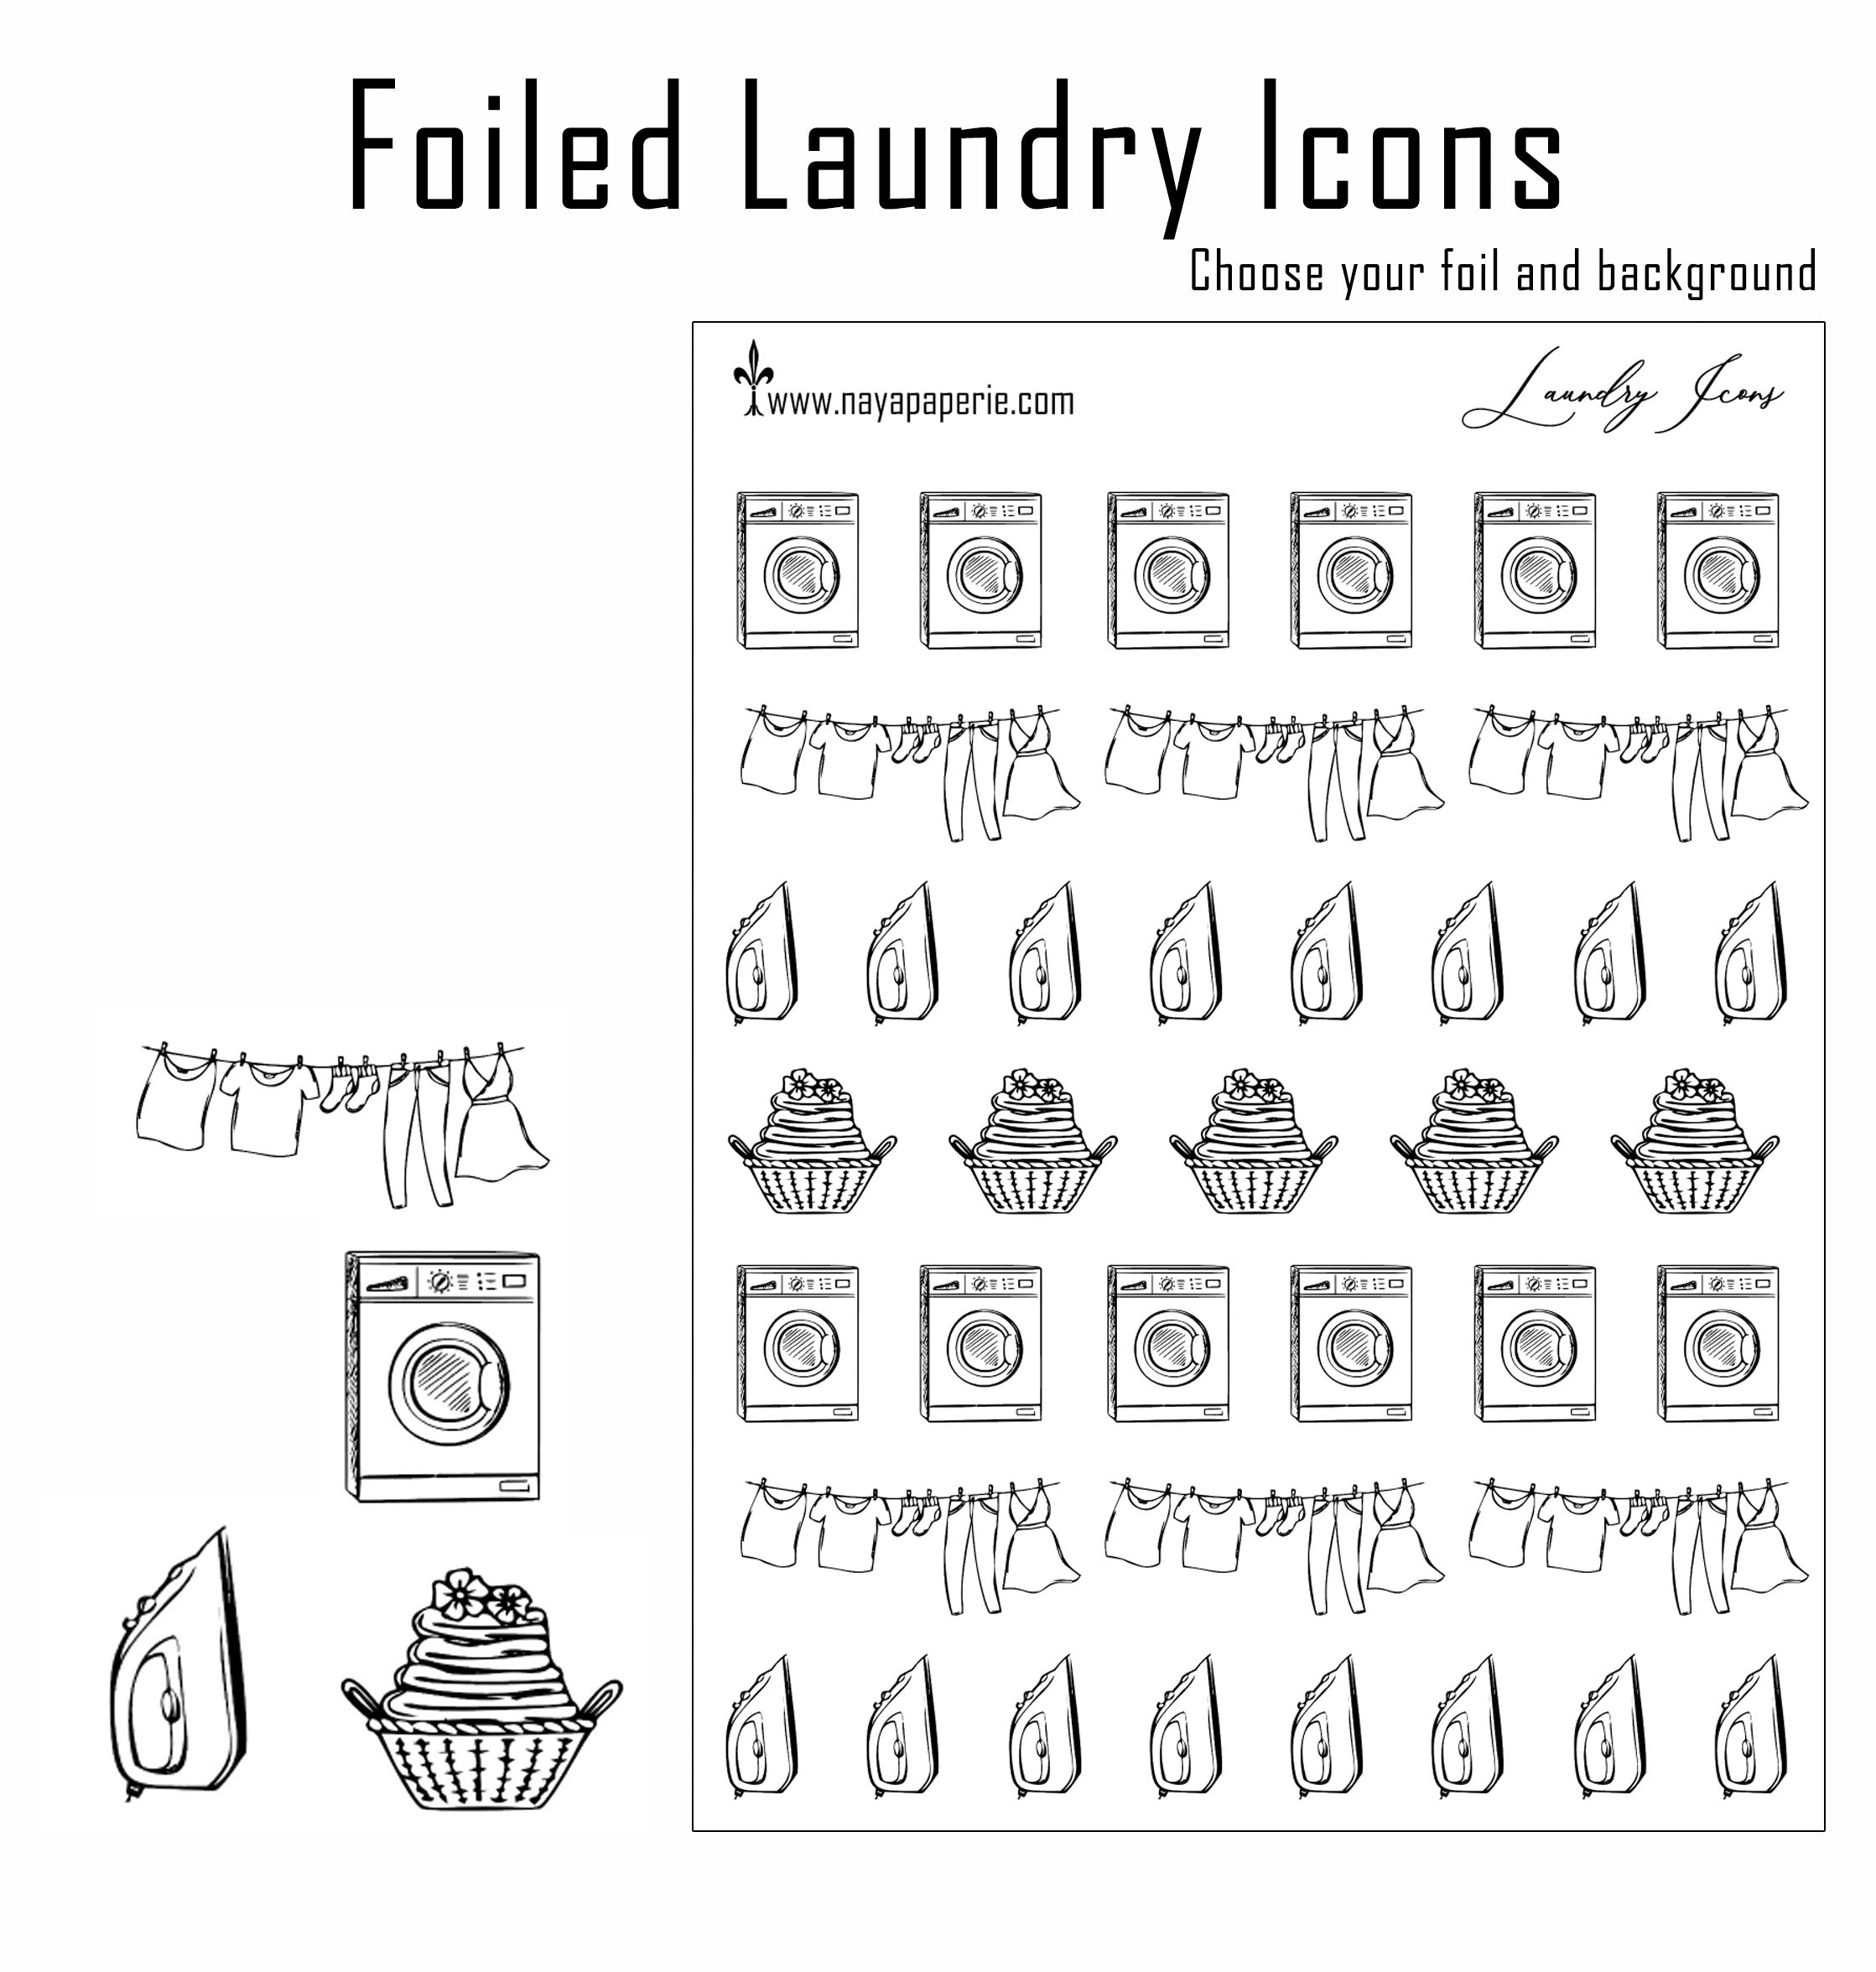 Foiled - Laundry Icons